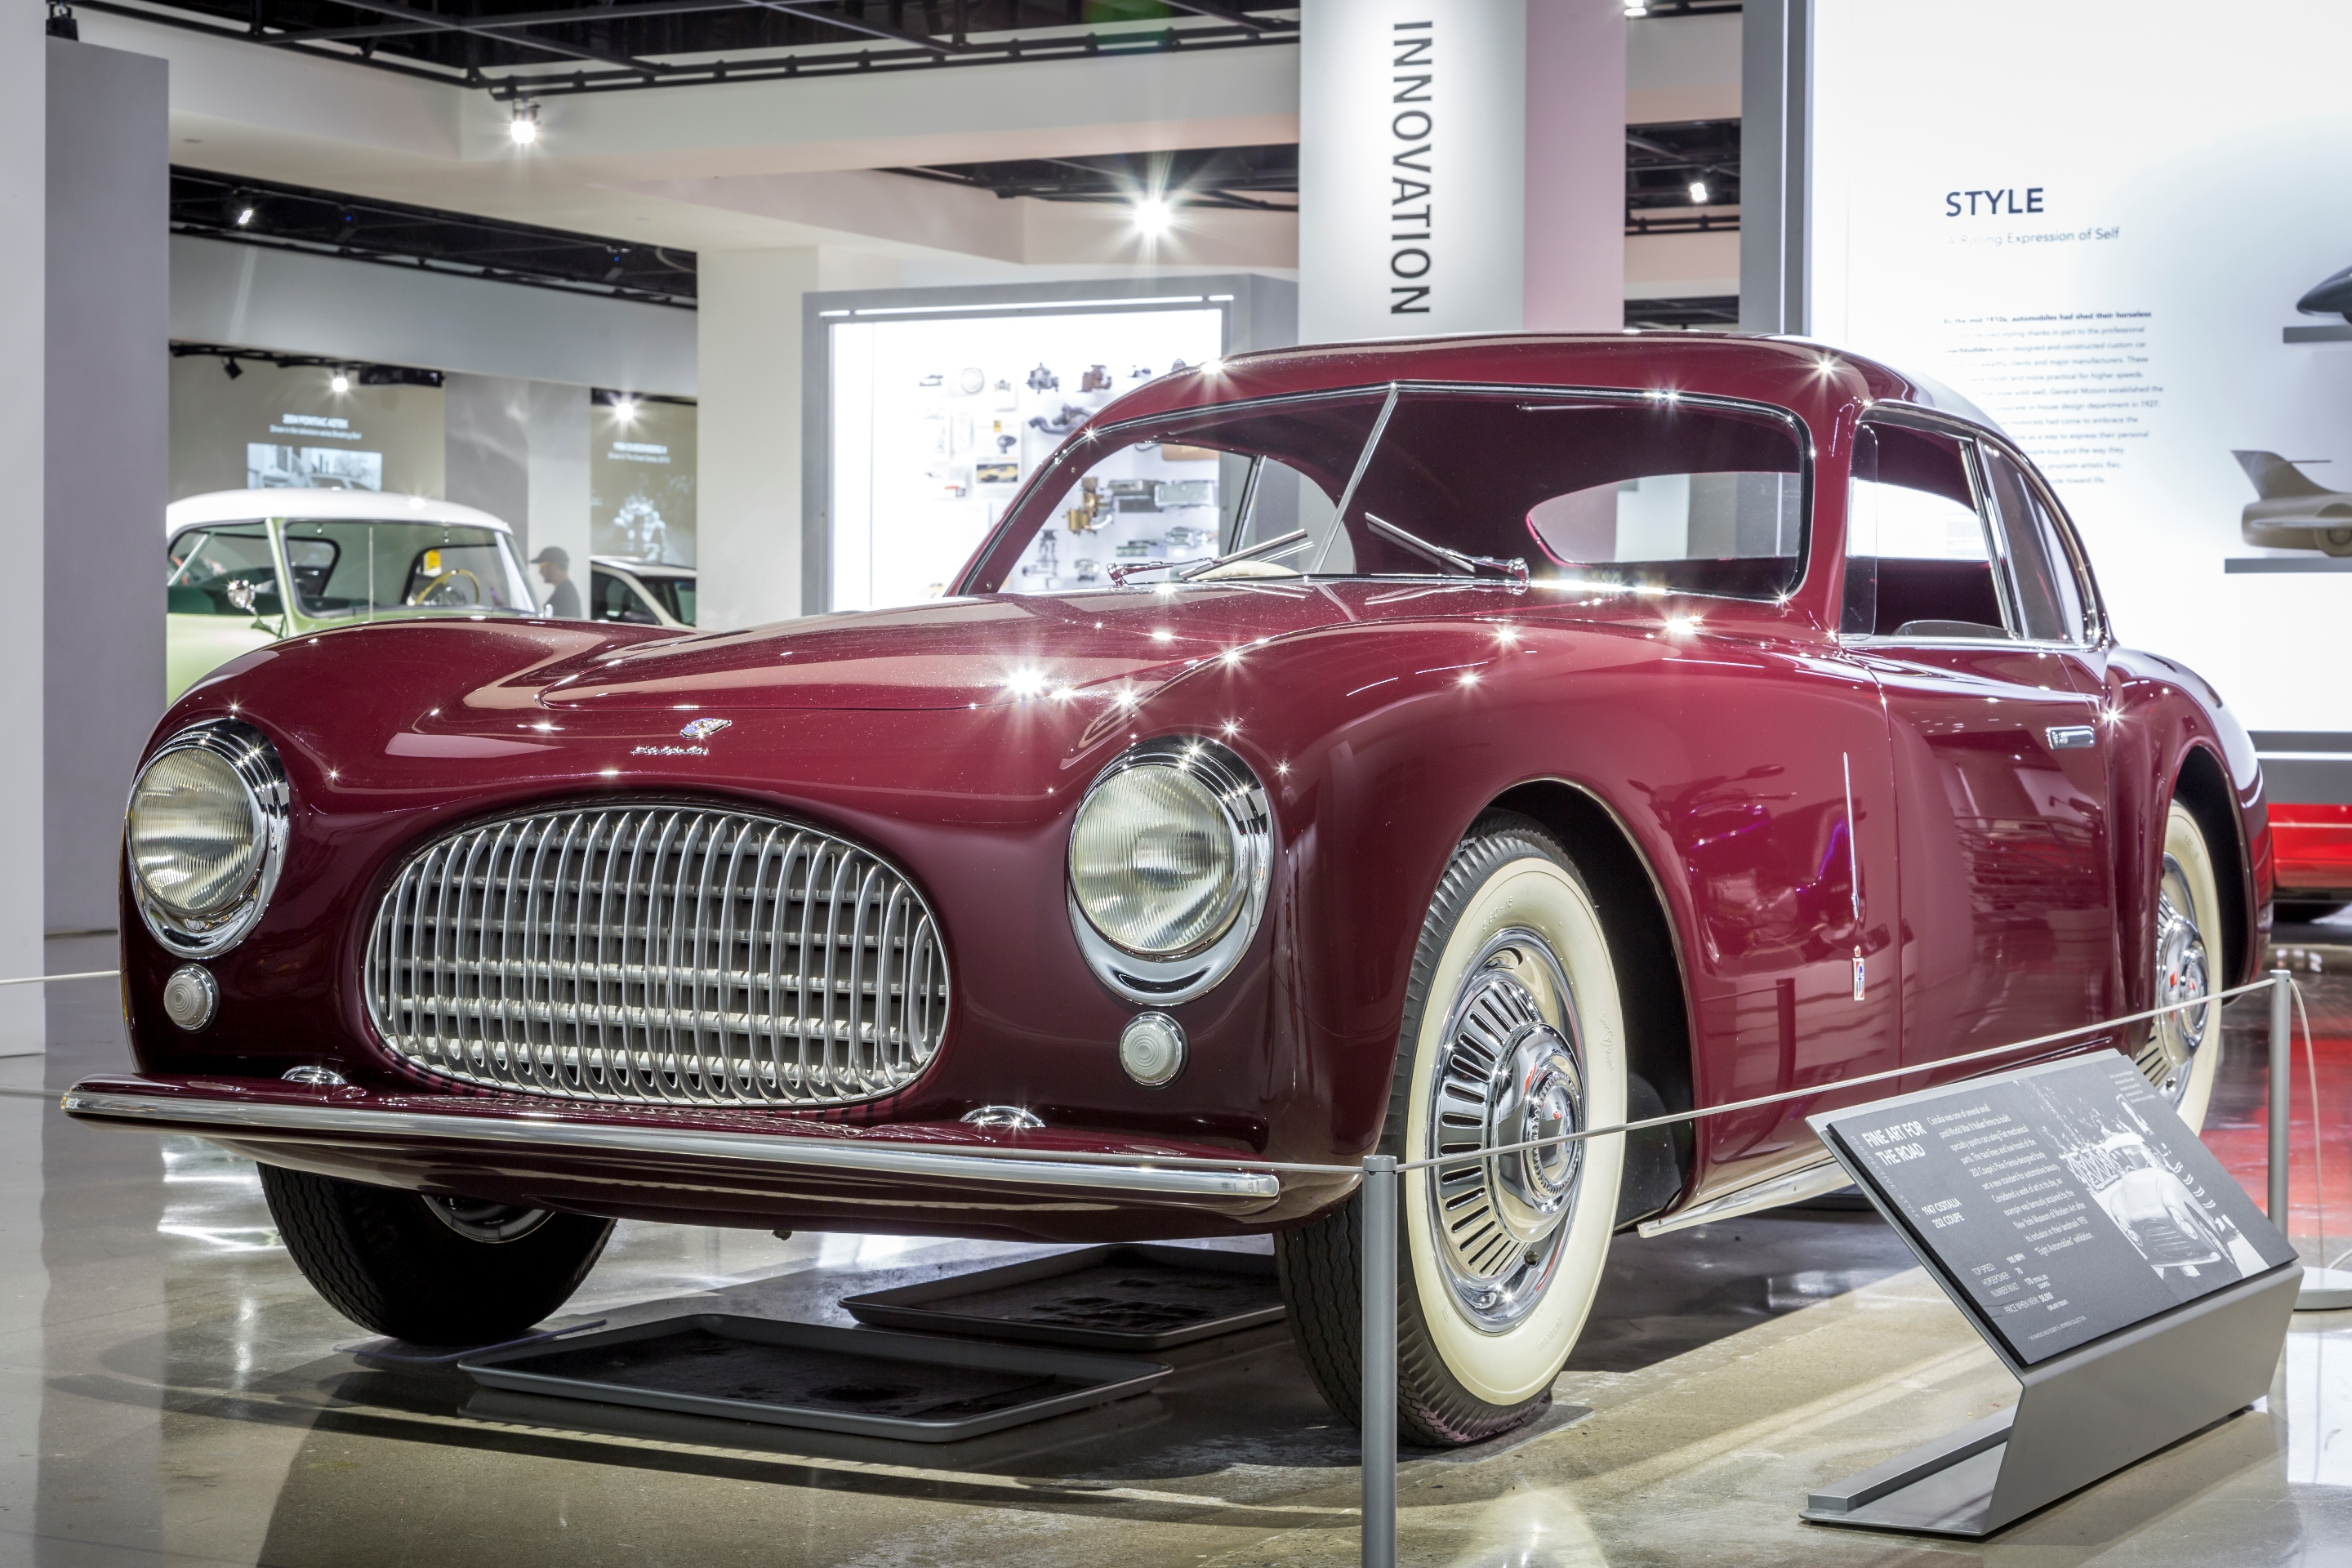 A Cisitalia 202 on display at the Petersen Automotive Museum in Los Angeles. | Petersen Automotive Museum photo